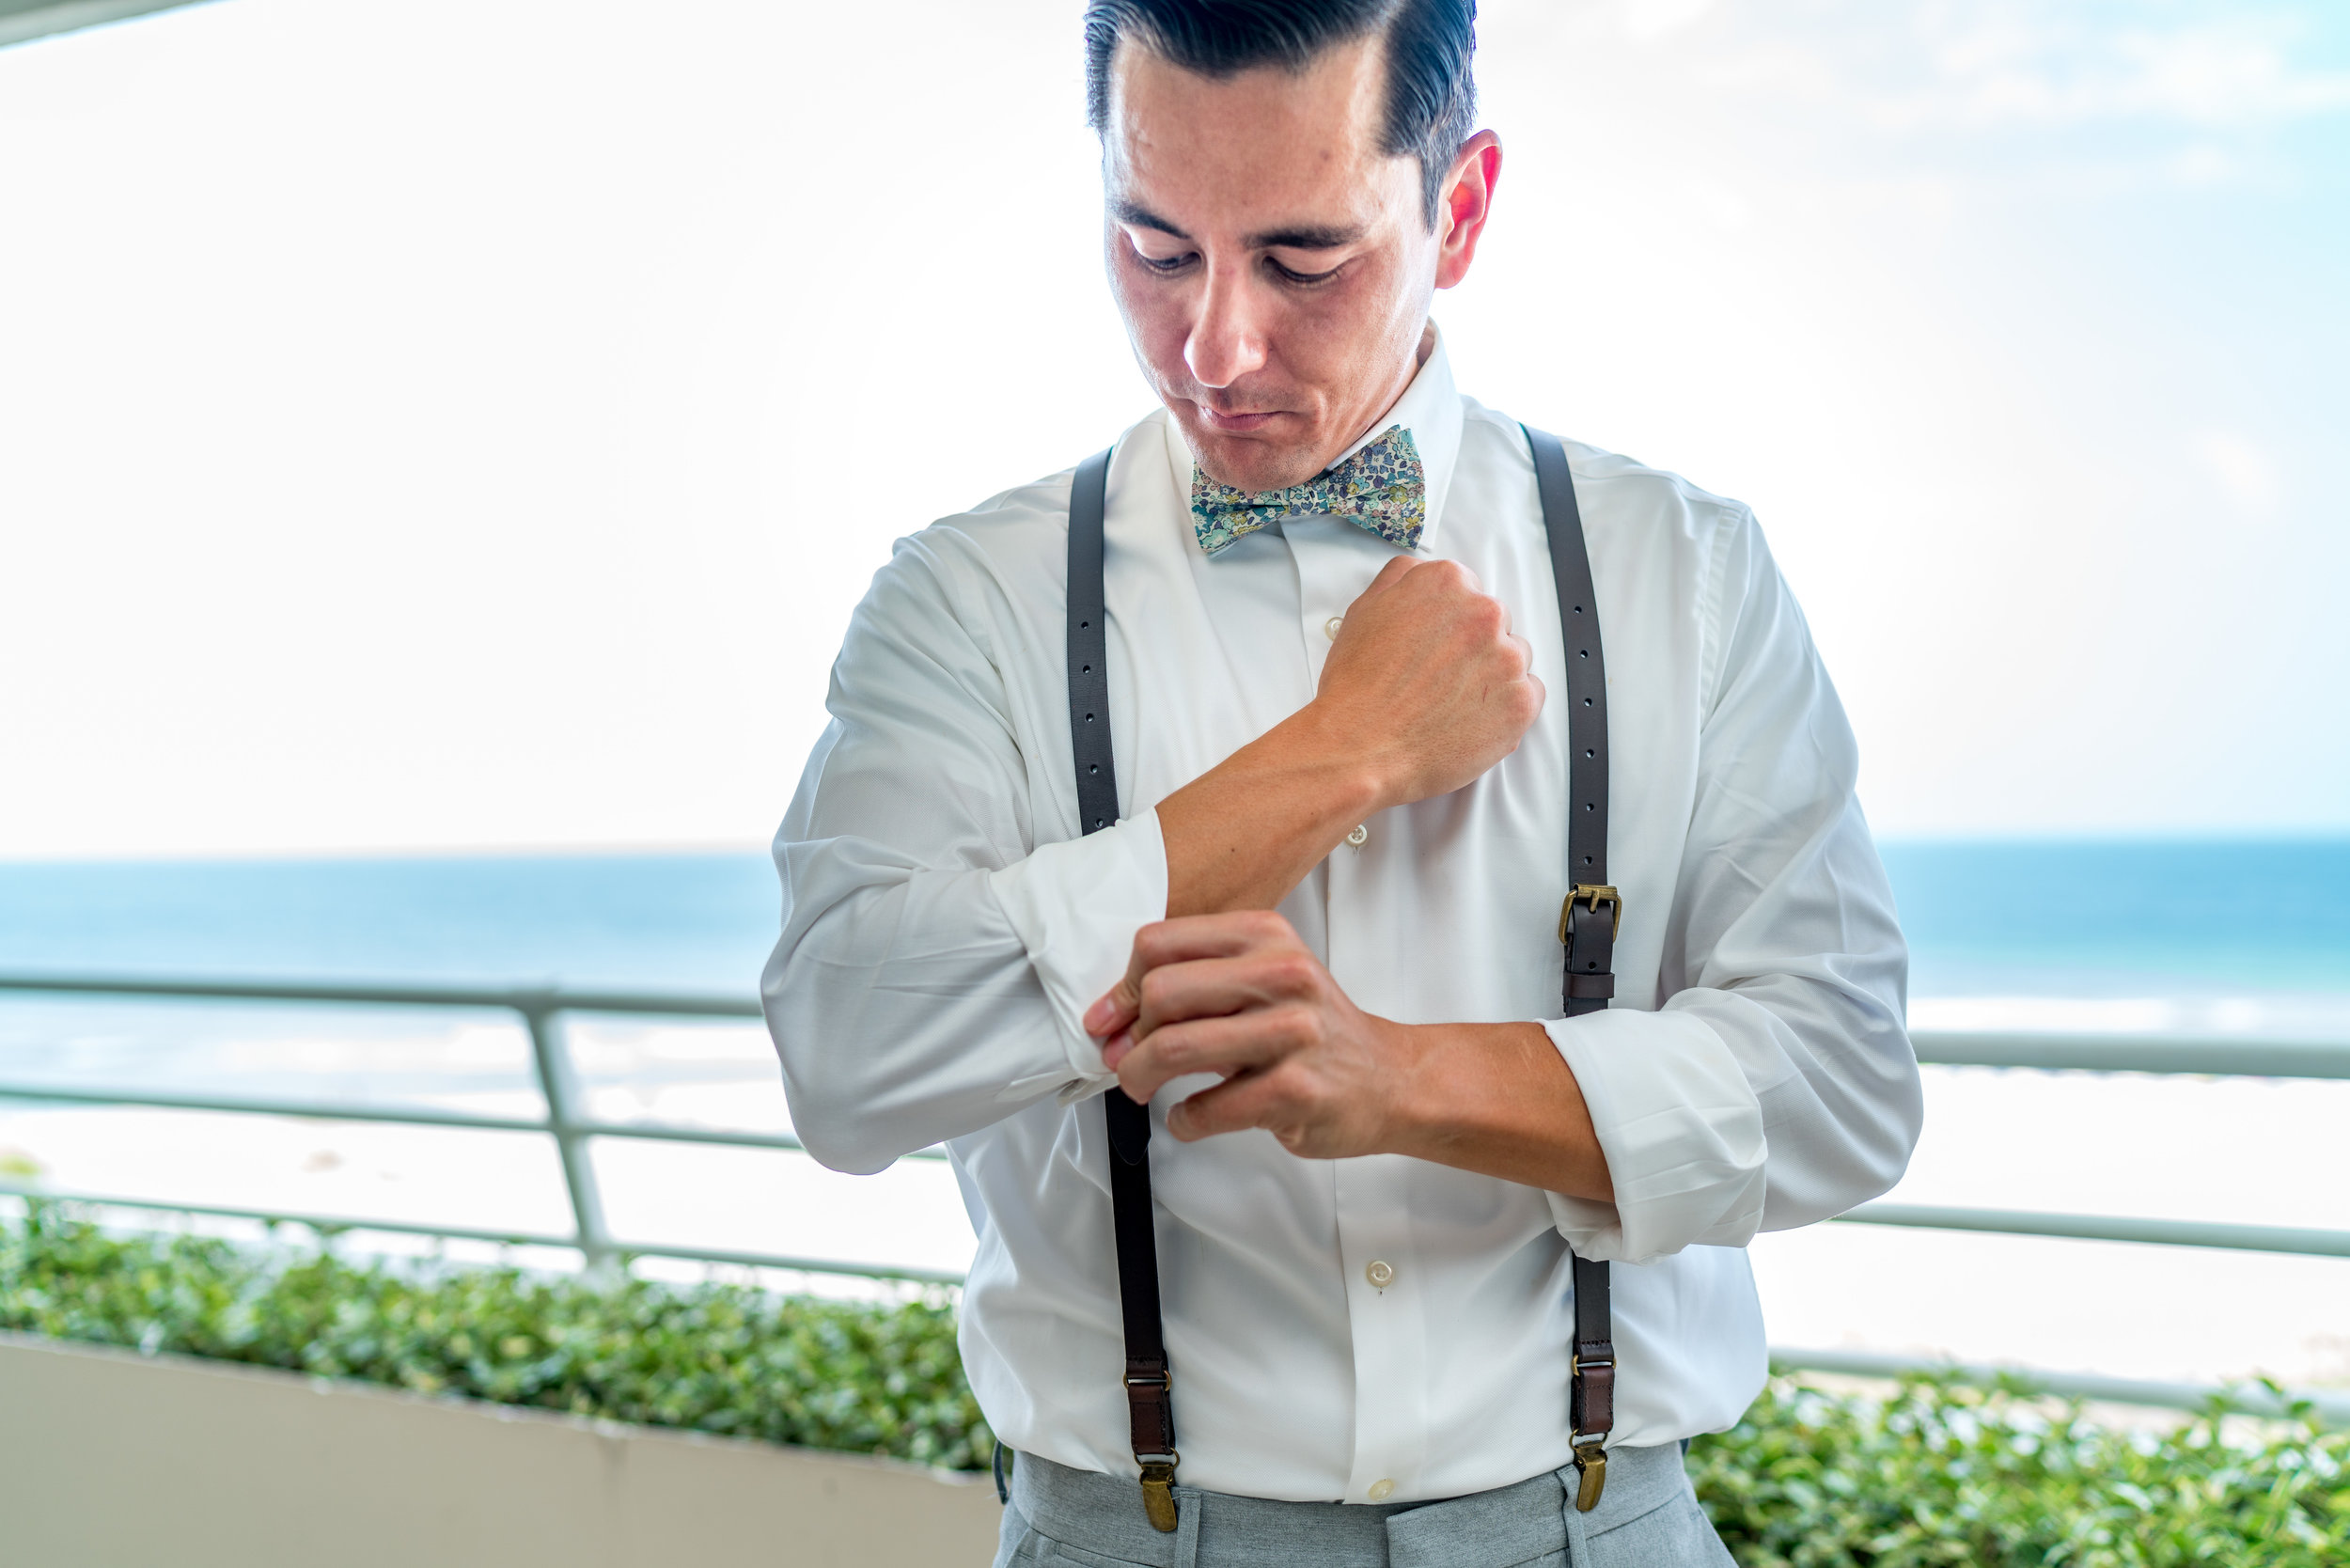 groom-getting-ready-suspenders.jpg